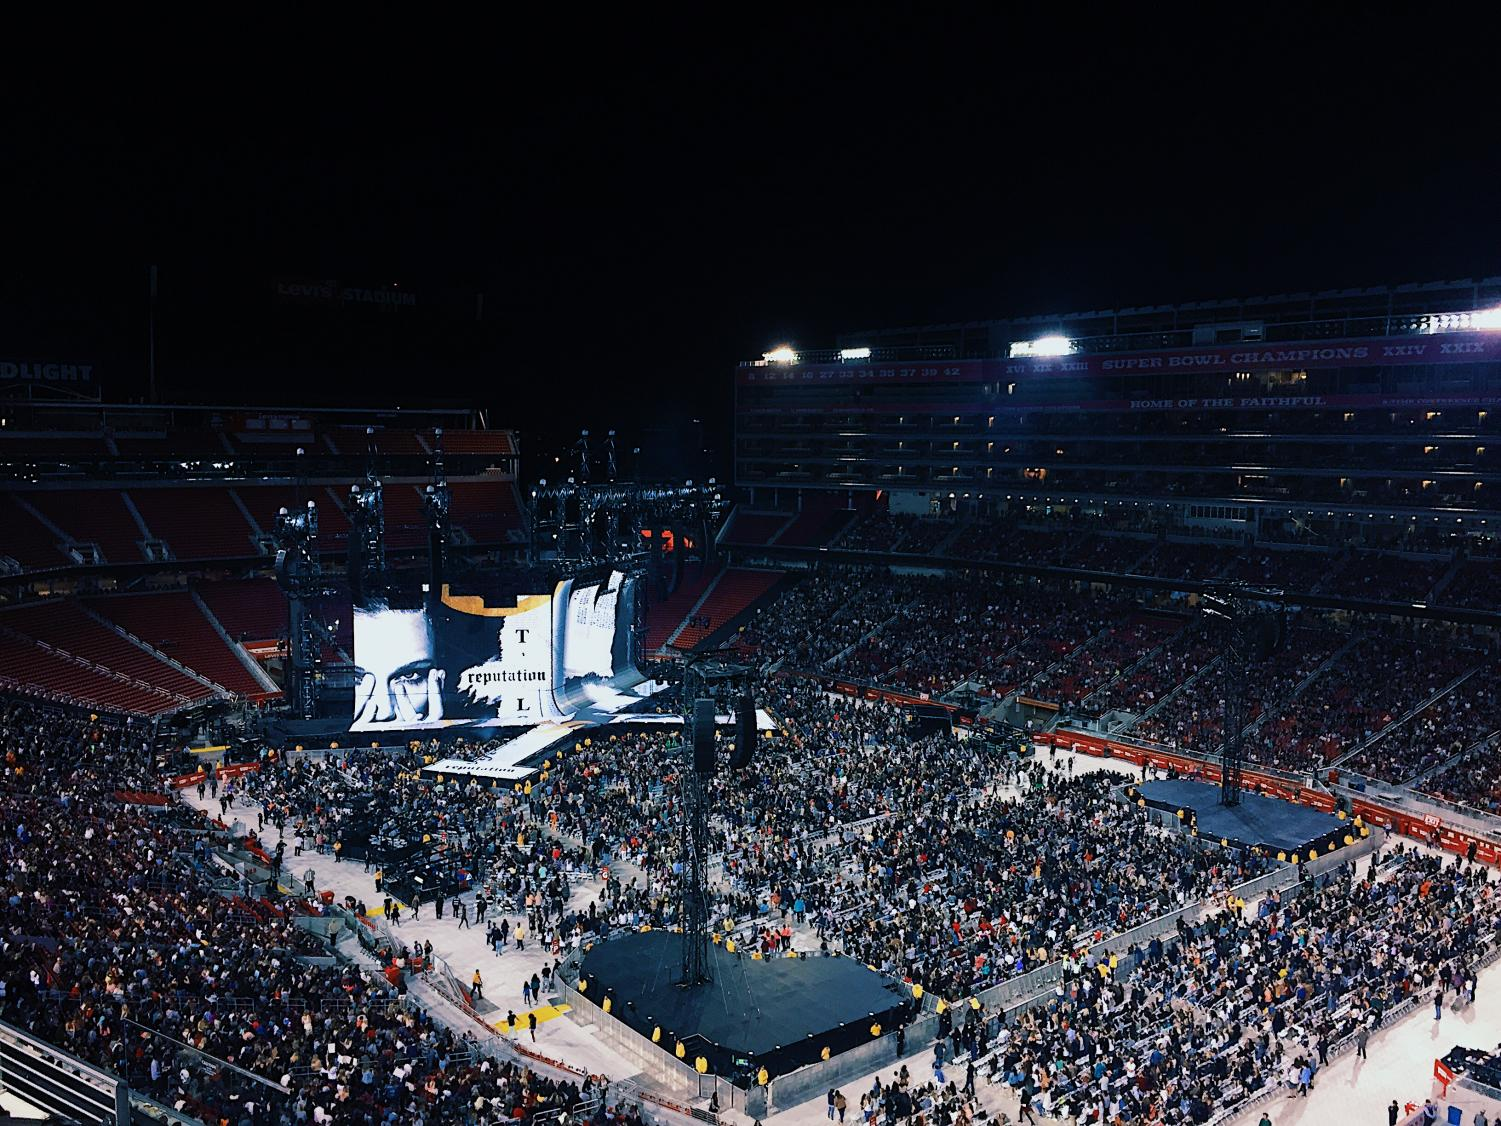 The stadium was filled with about 55,000 of fans.